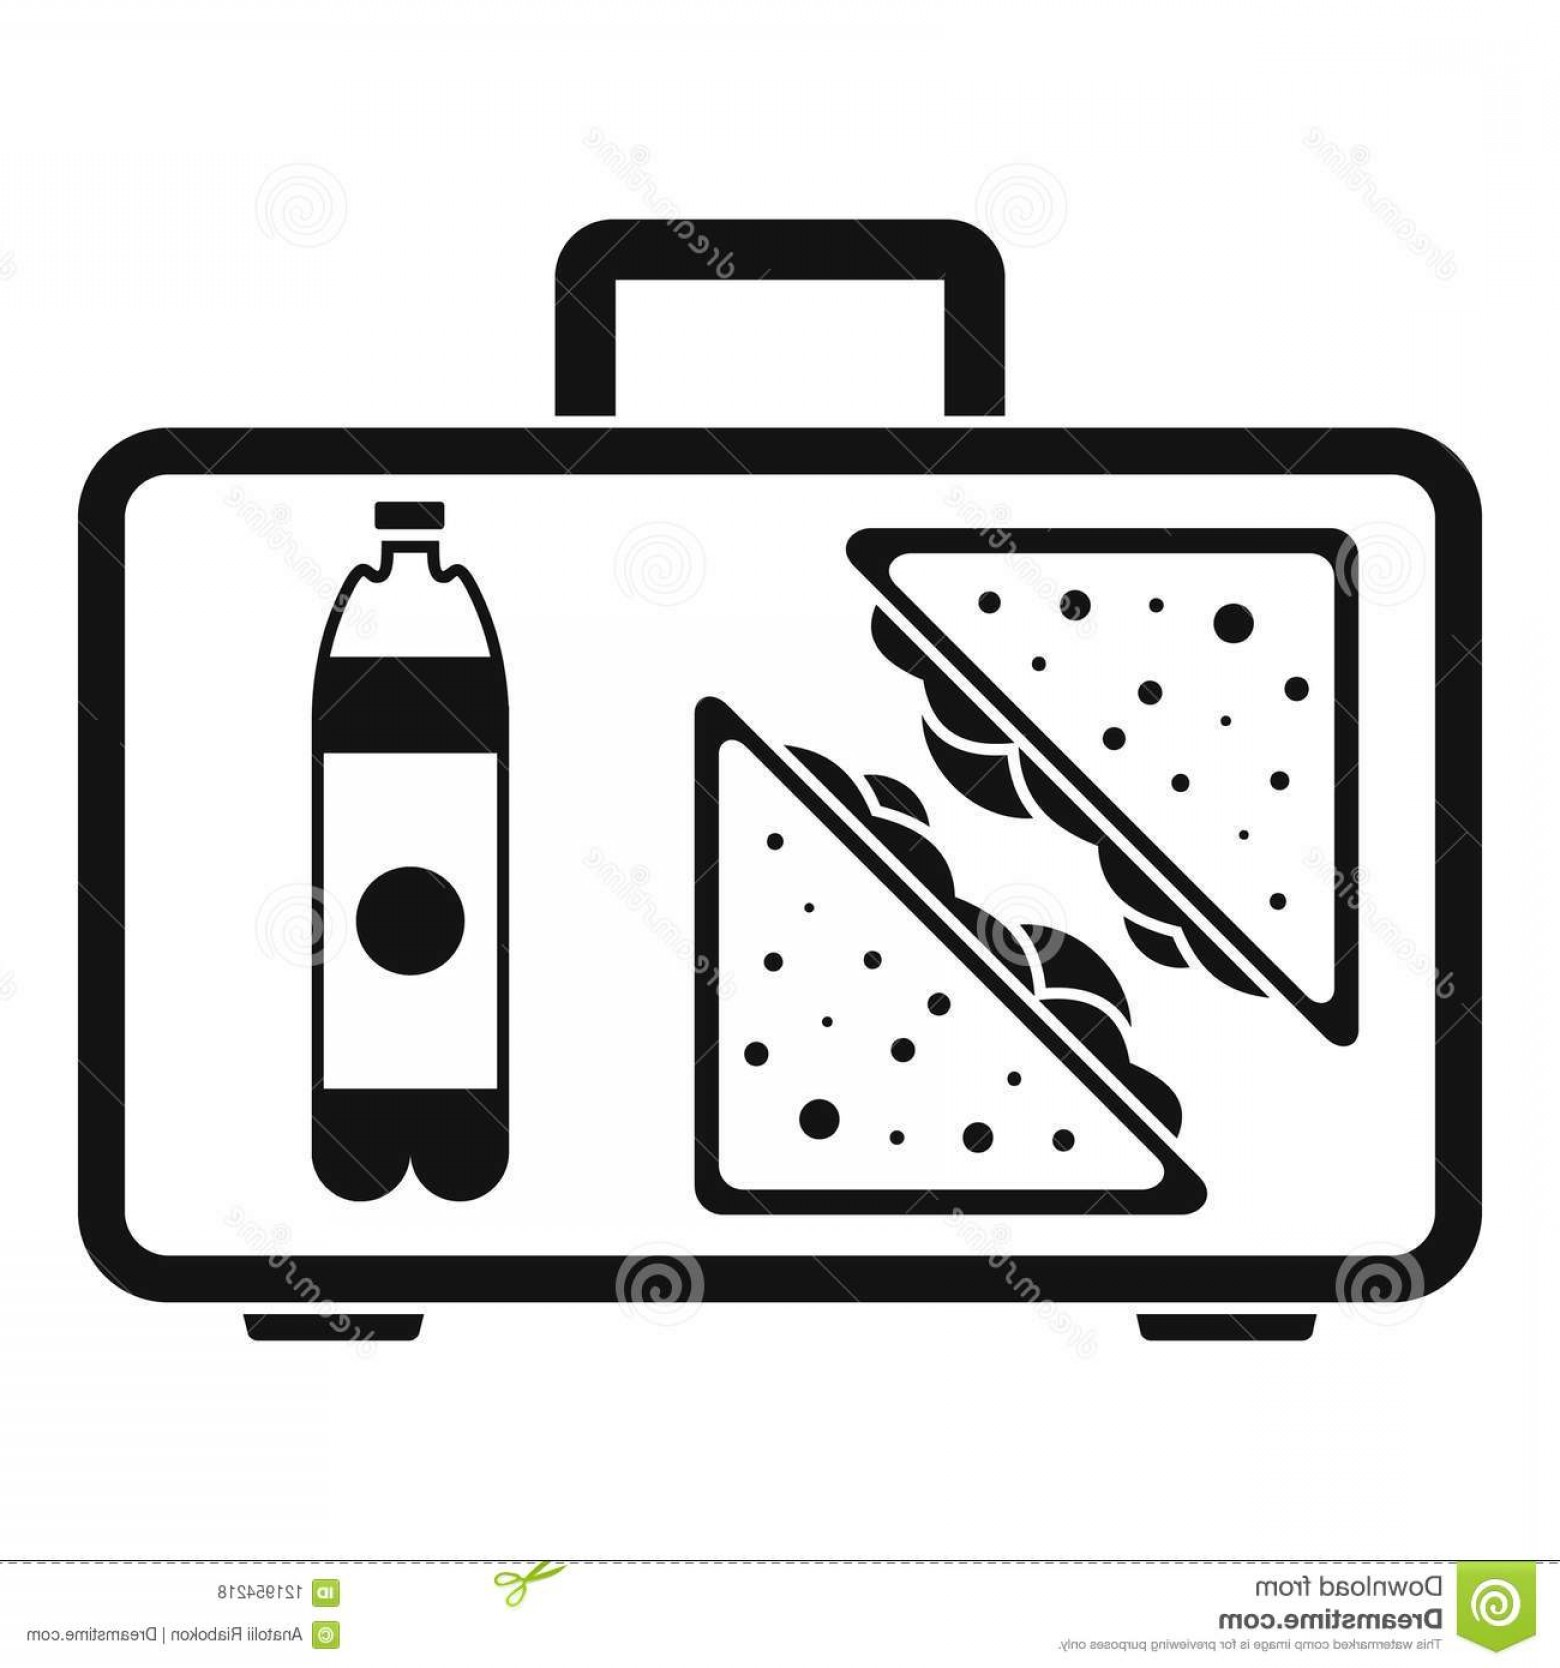 L Unch Icon In Vector: Handbag Lunch Icon Simple Illustration Handbag Lunch Vector Icon Web Design Isolated White Background Handbag Lunch Icon Image